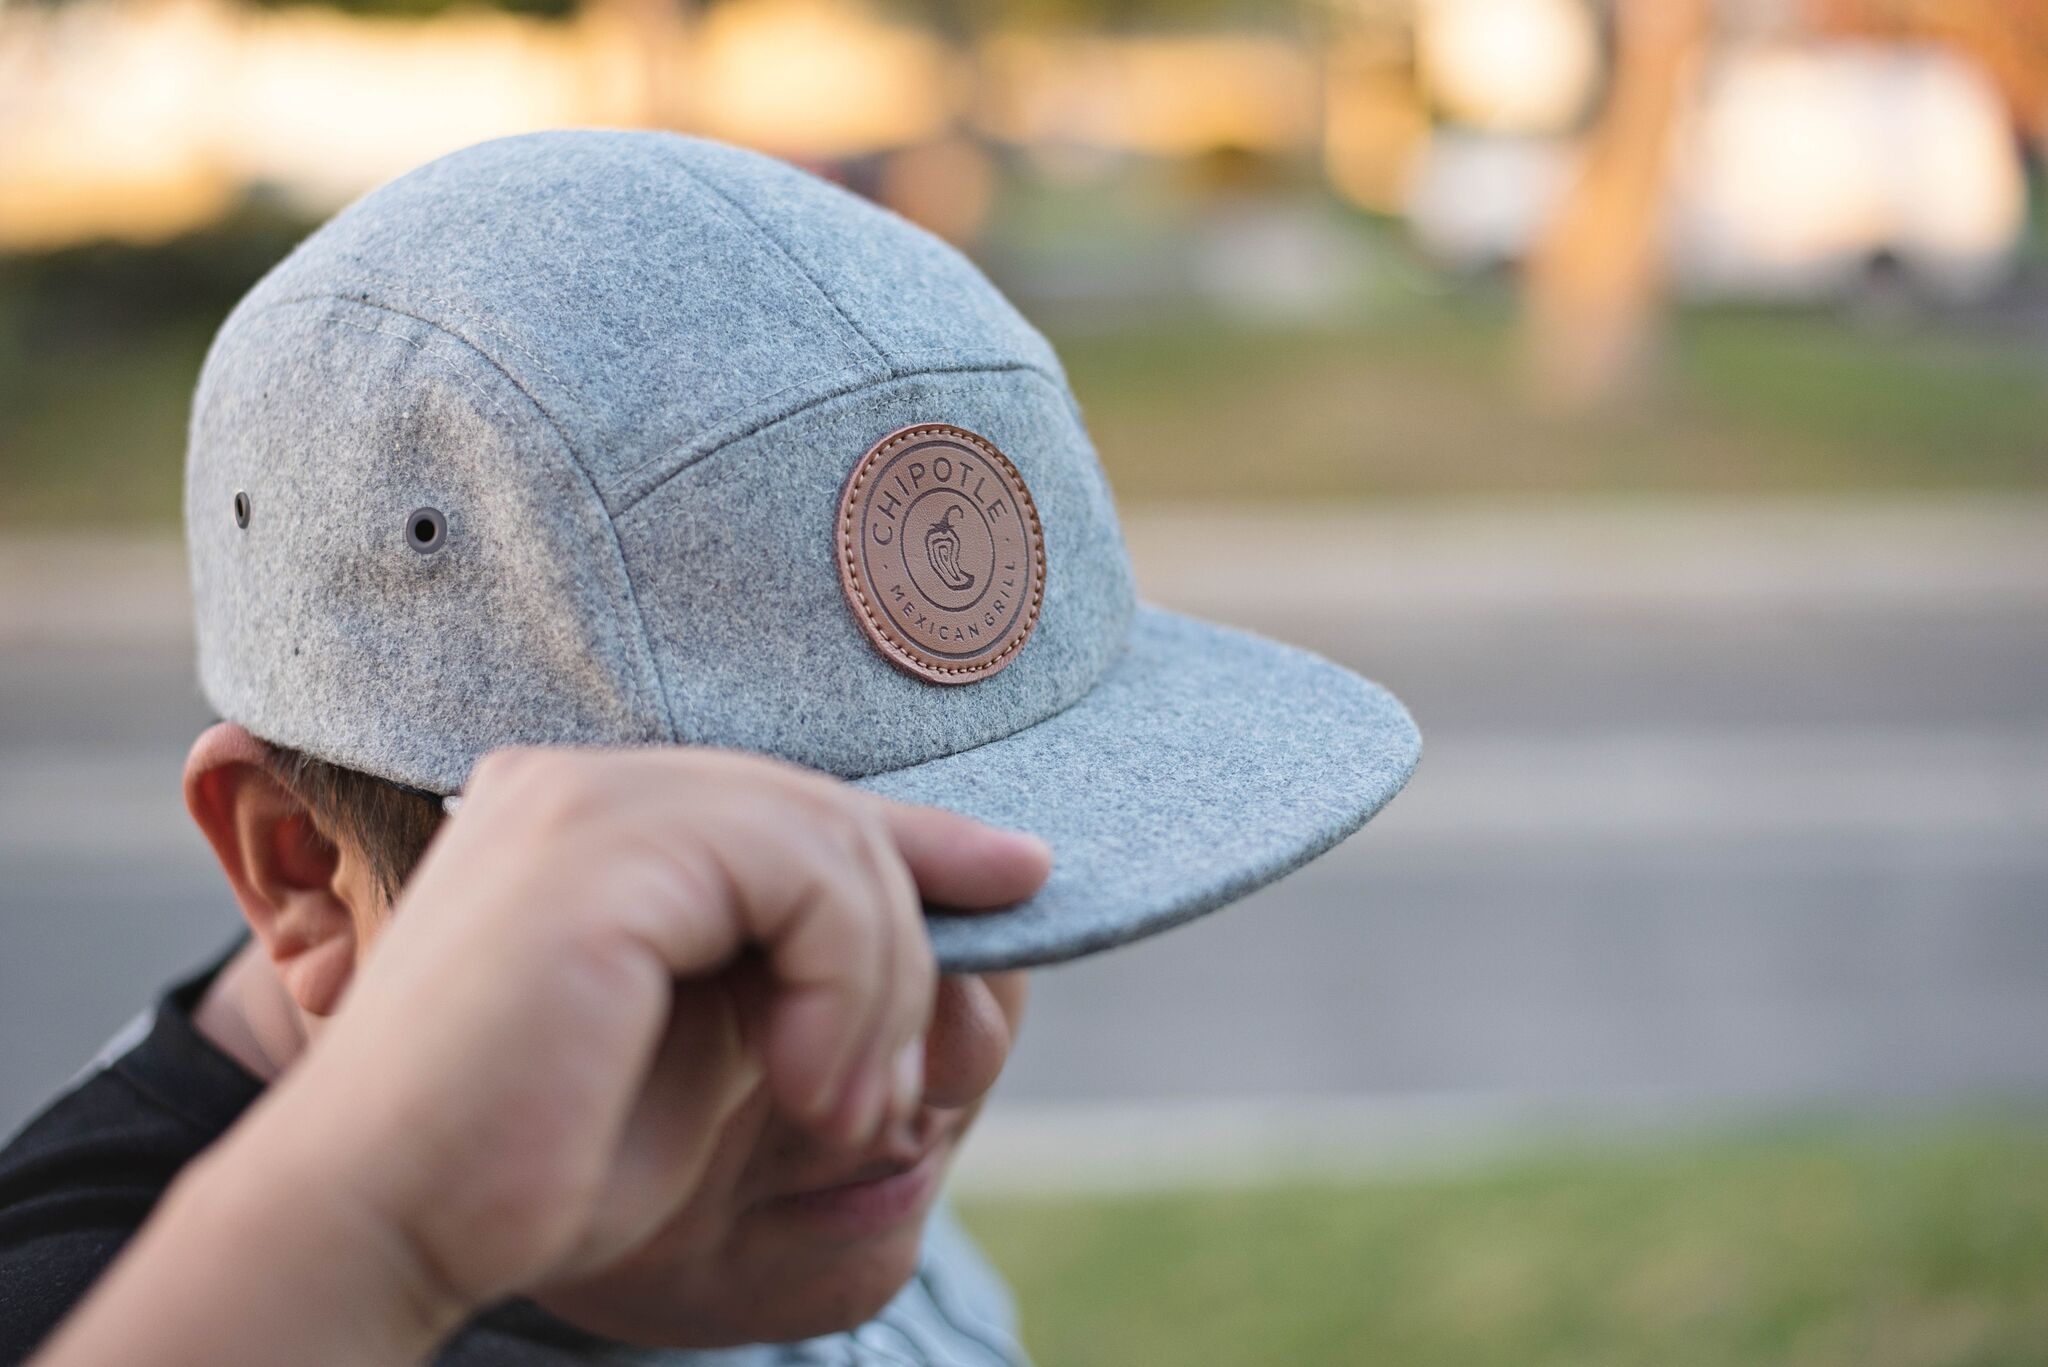 337b60985e1a8f A one-piece minimum patch hat that can be produced in 3 business days, the  Cranston camper hat brings style back. This one-size-fits-most 5-panel ...